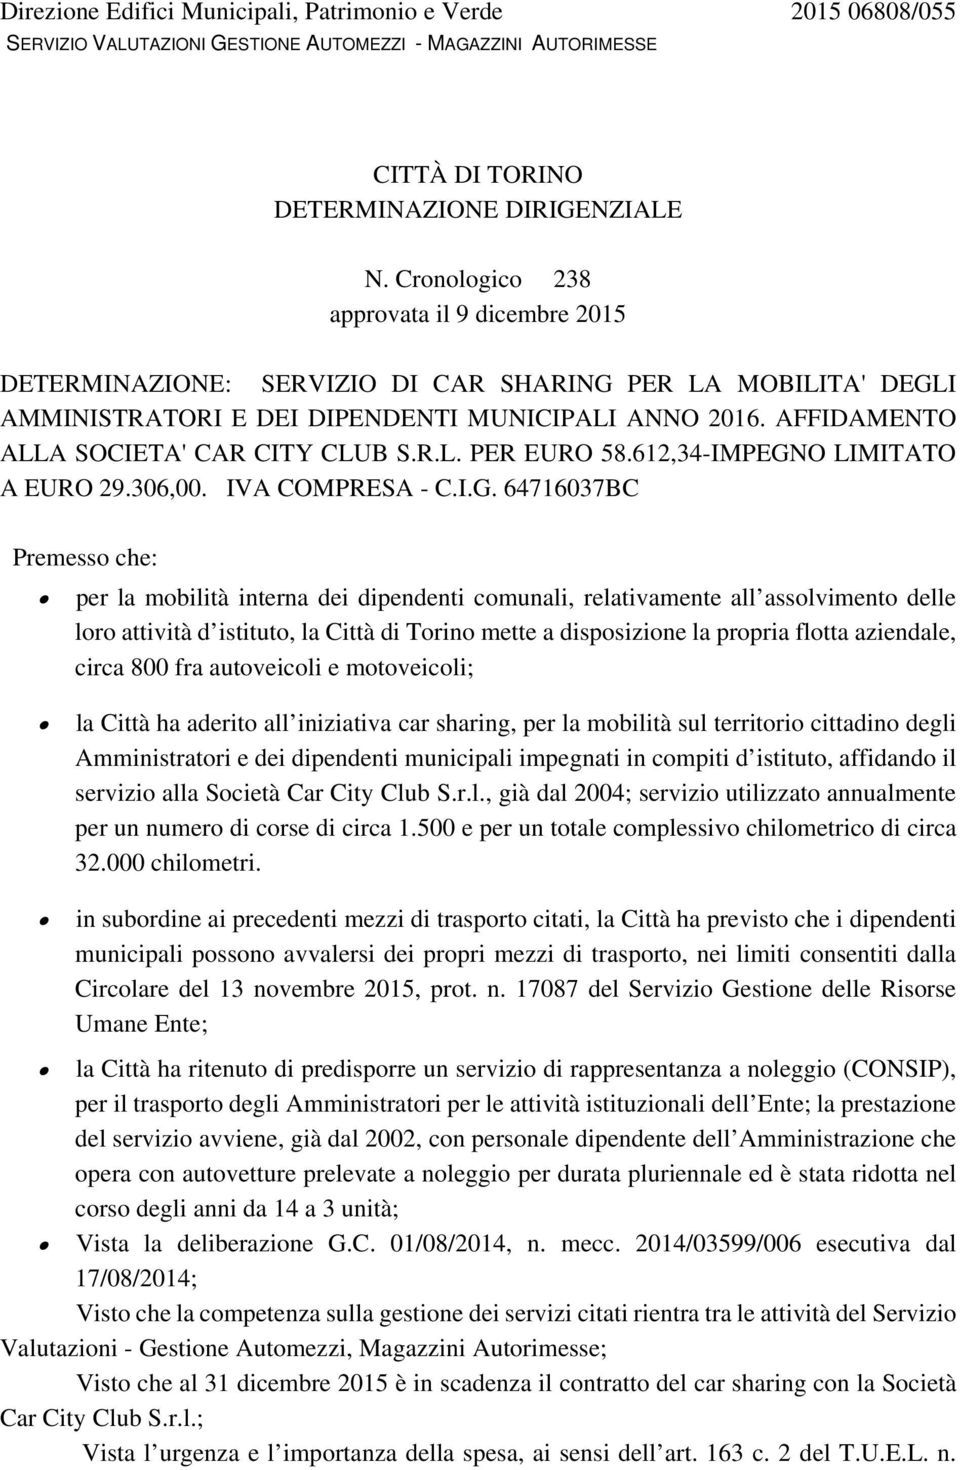 AFFIDAMENTO ALLA SOCIETA' CAR CITY CLUB S.R.L. PER EURO 58.612,34-IMPEGN